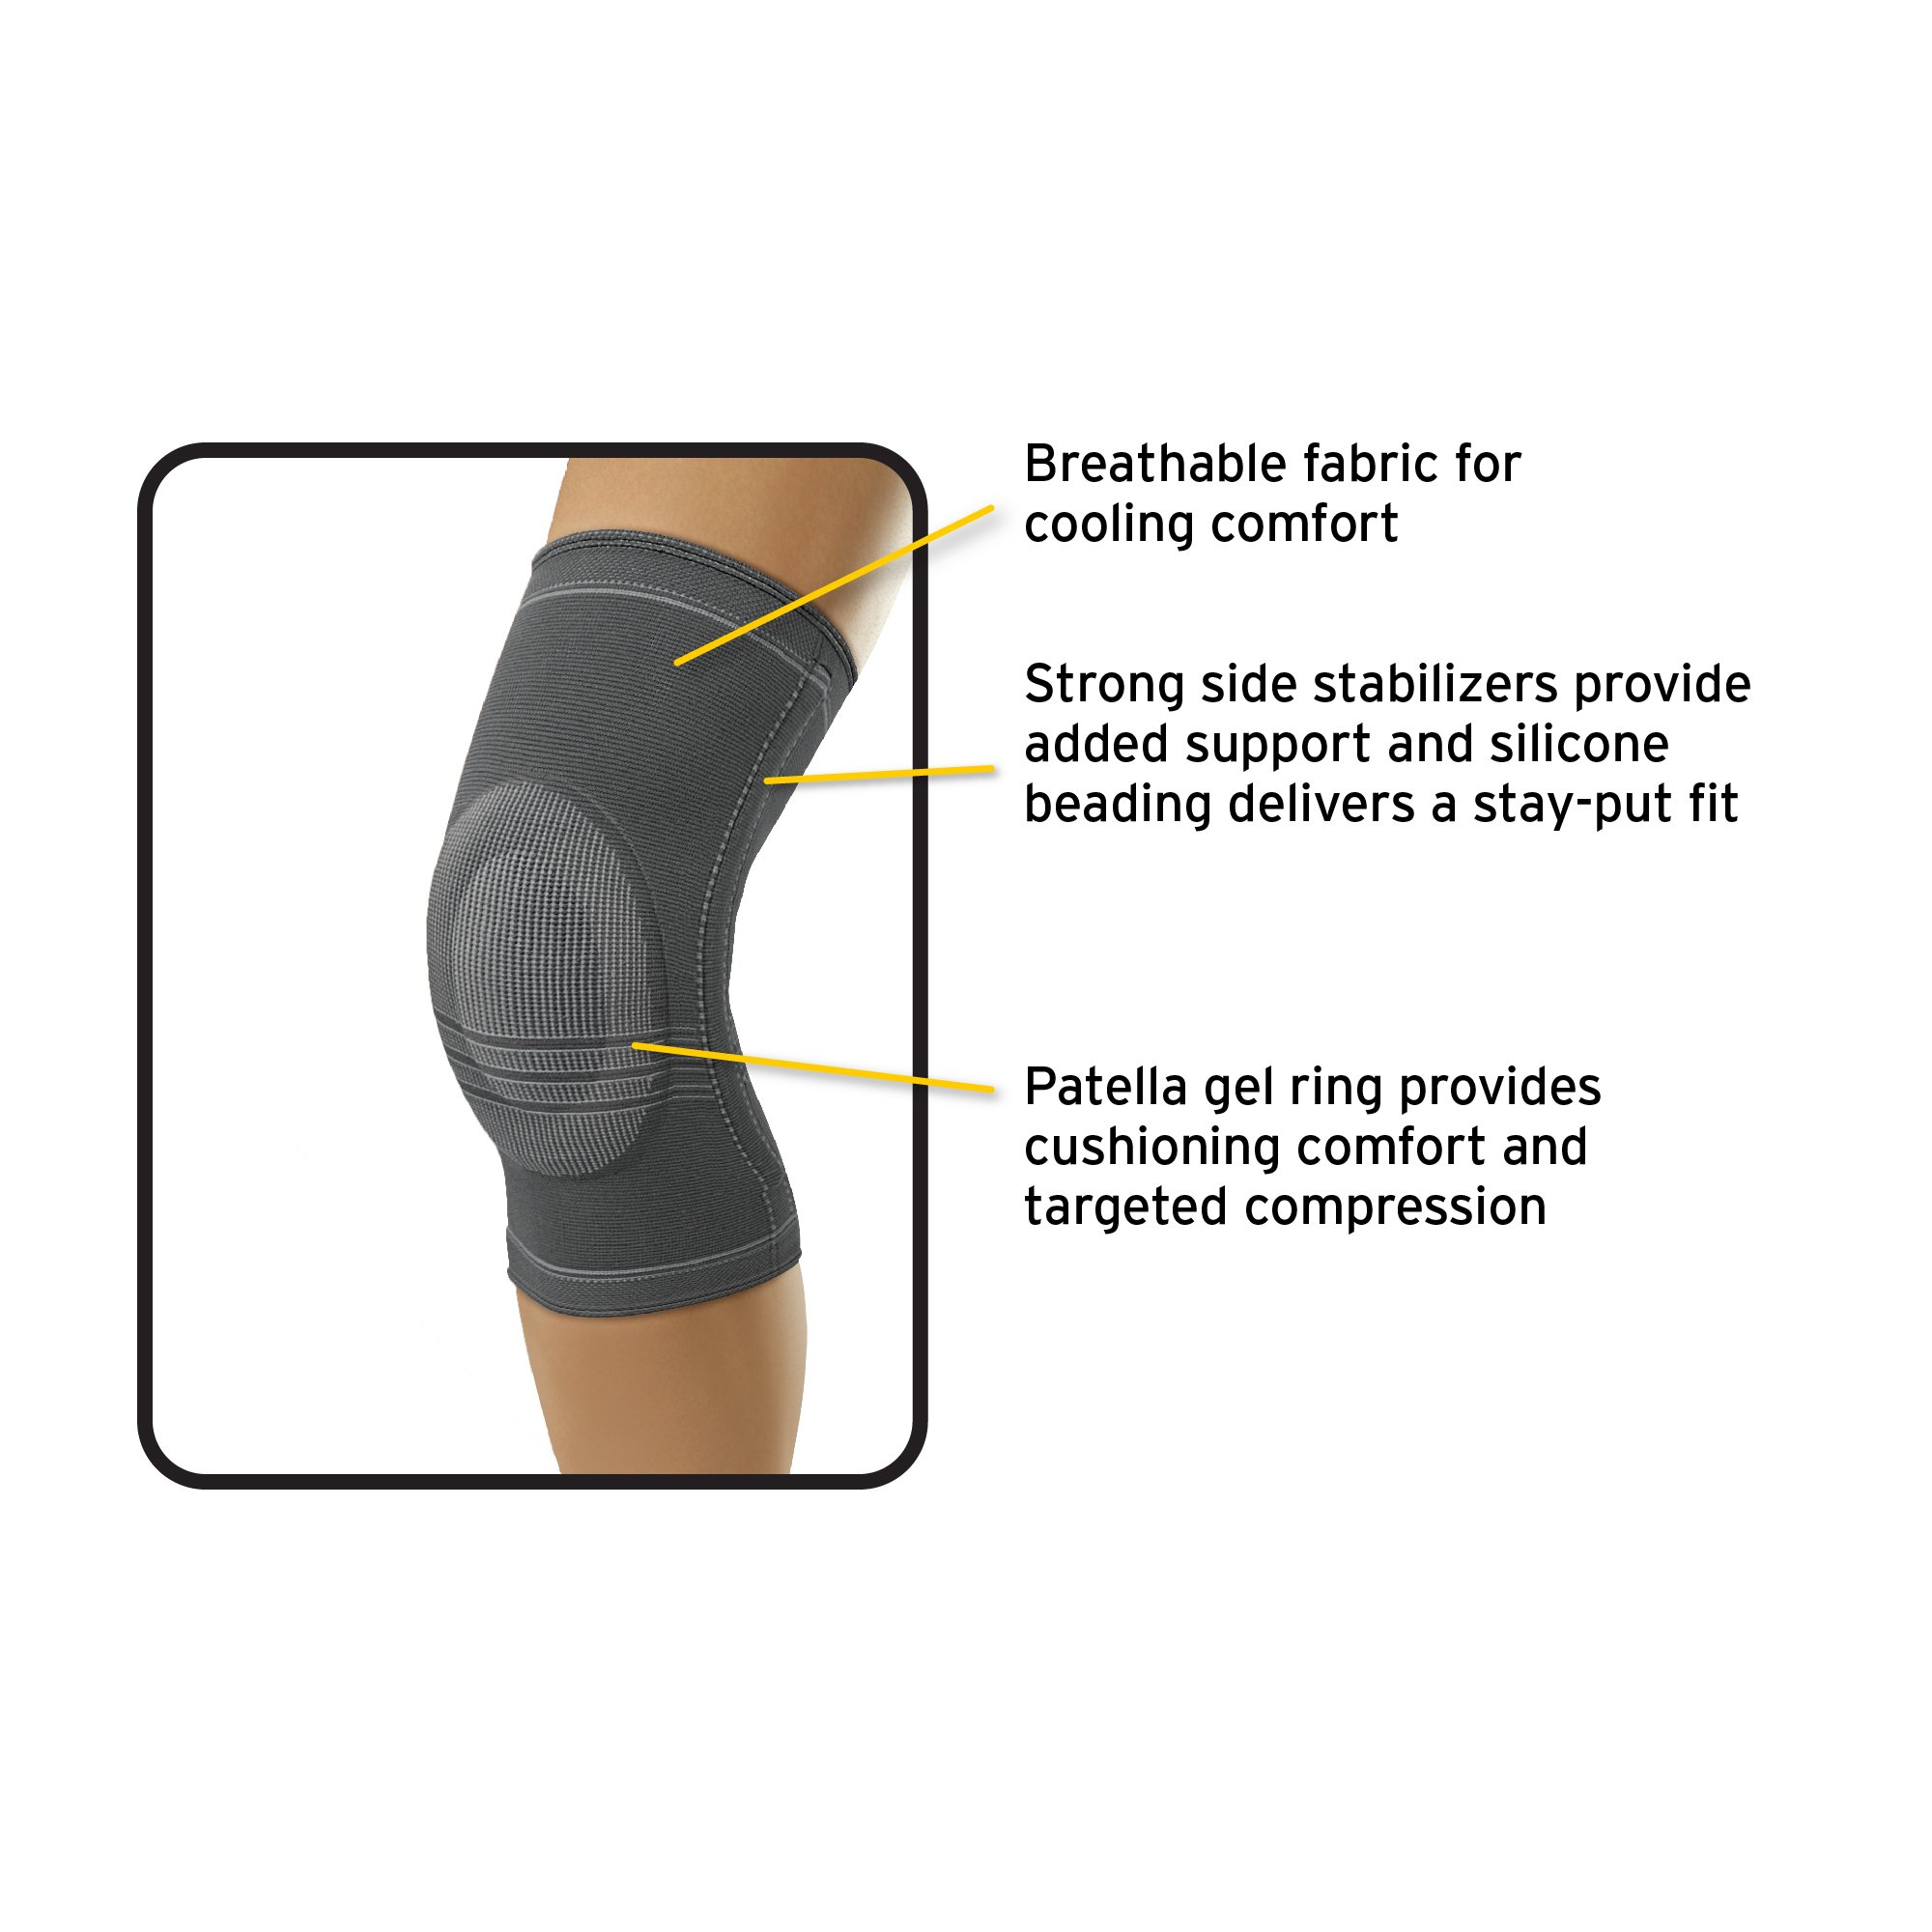 Futuro Active Knit Knee Stabilizer, Provides Support, Moderate Stabilizing Support, Medium, Gray by Futuro (Image #2)